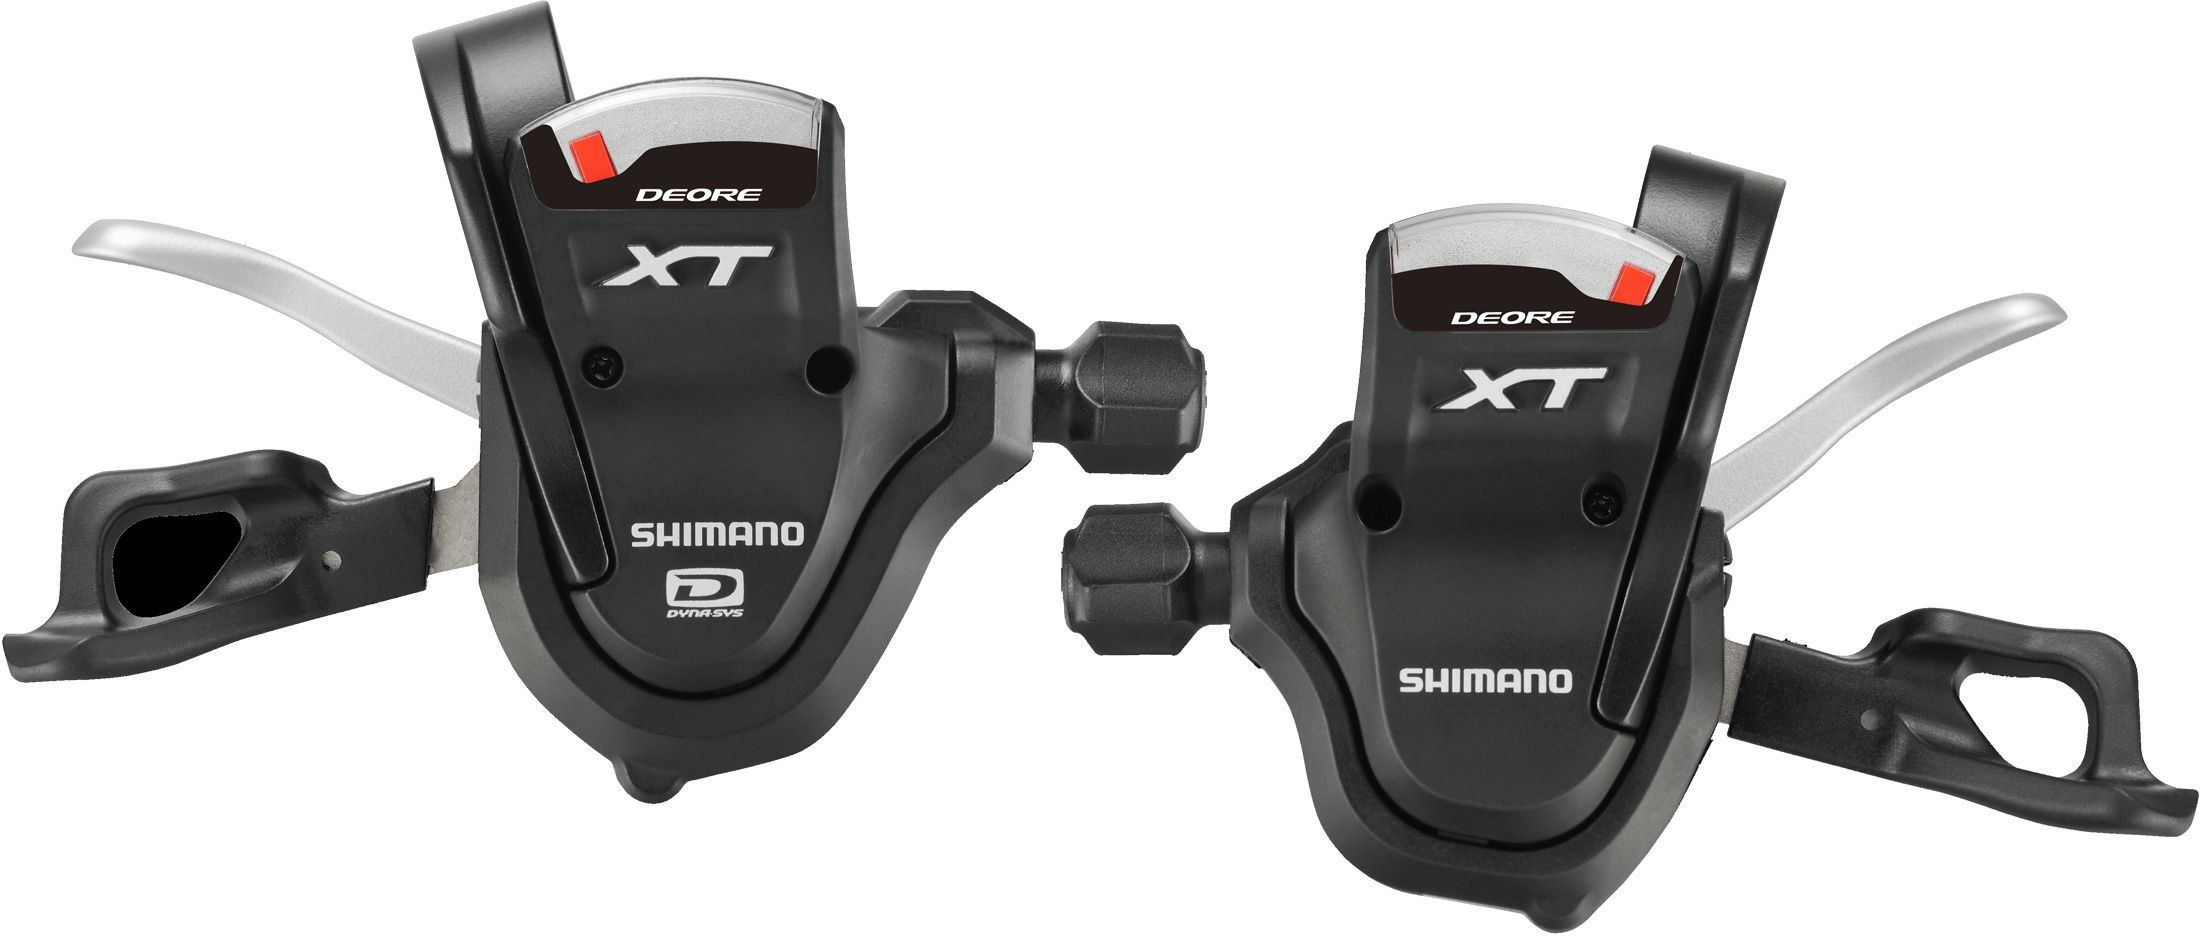 Запчасть Shimano Shimano Шифтер DEORE XT free shipping original deore m610 slx xt rear derailleurs mtb bike accessory mountain bicycle parts for 3x10s 30s speed